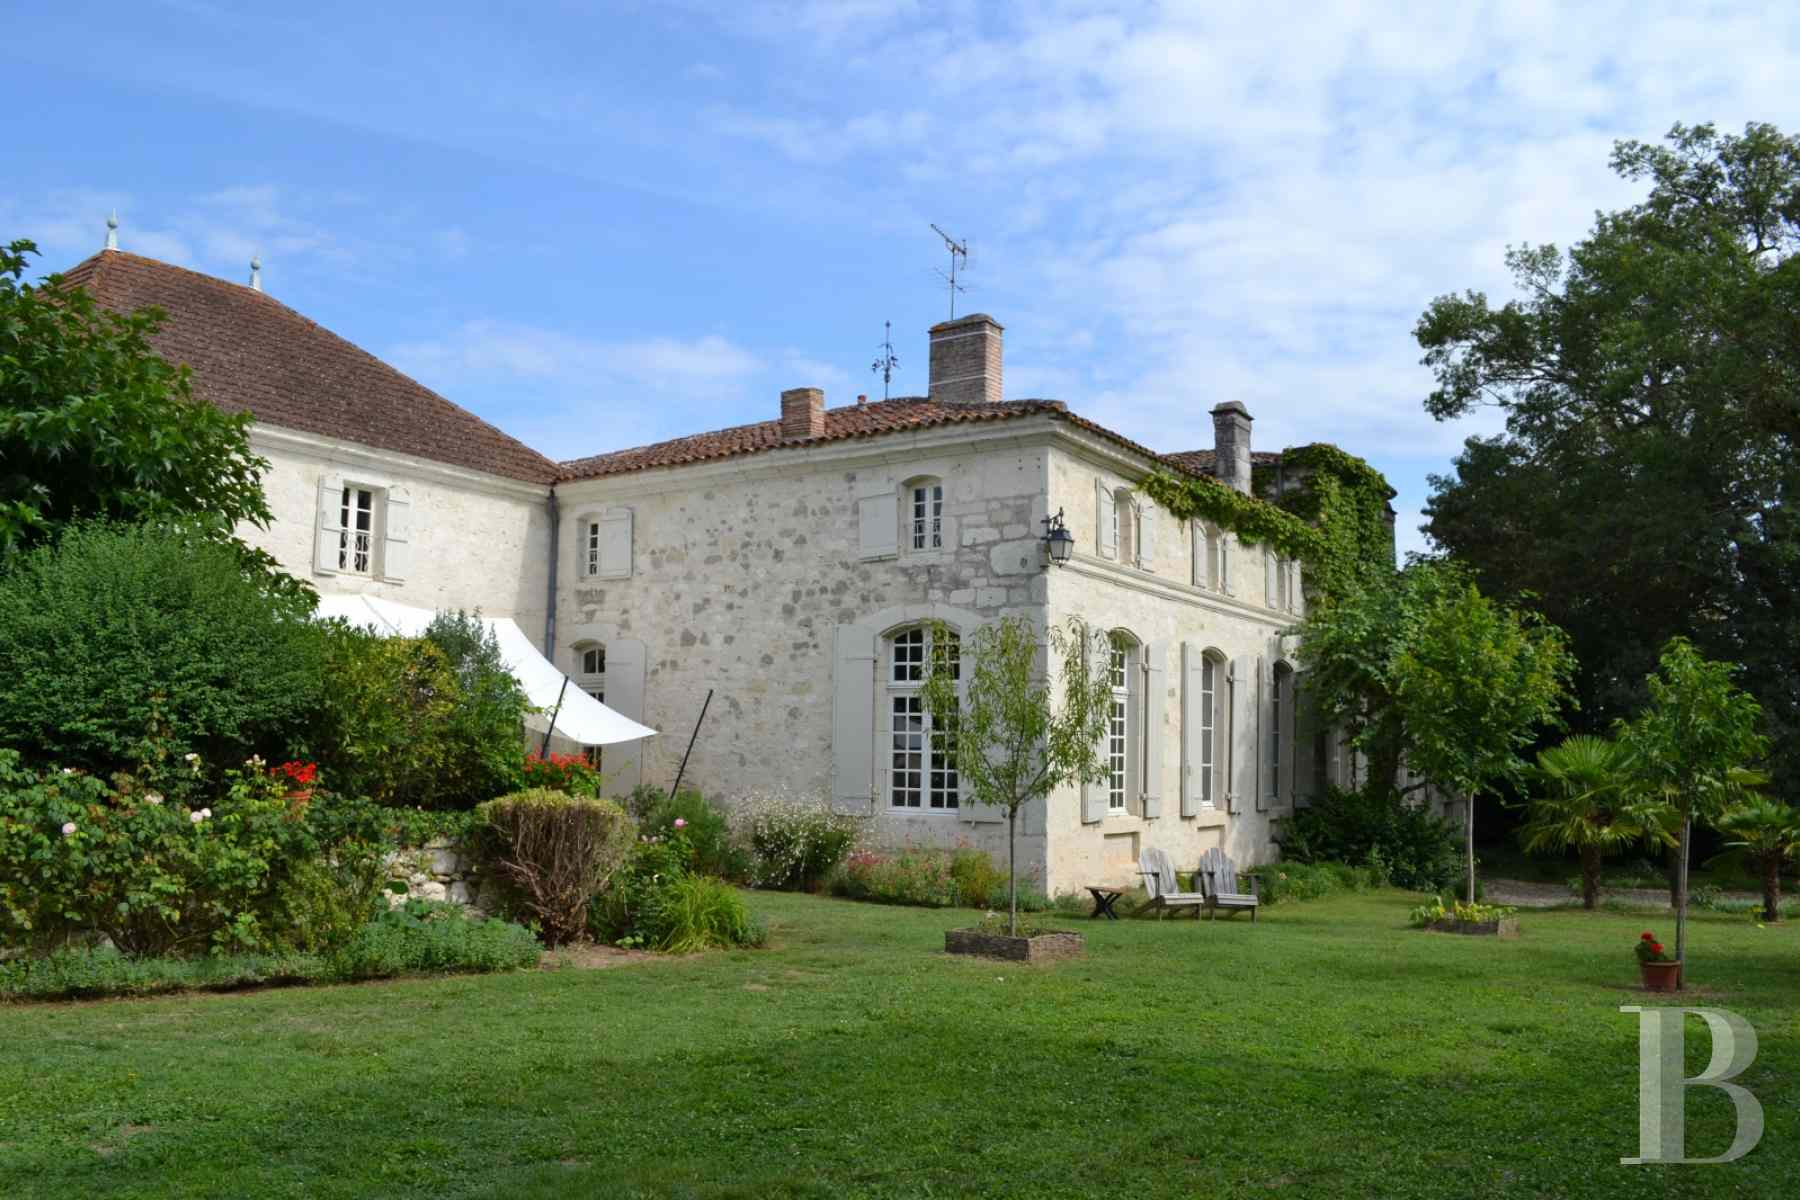 property for sale France aquitaine property 18th - 2 zoom